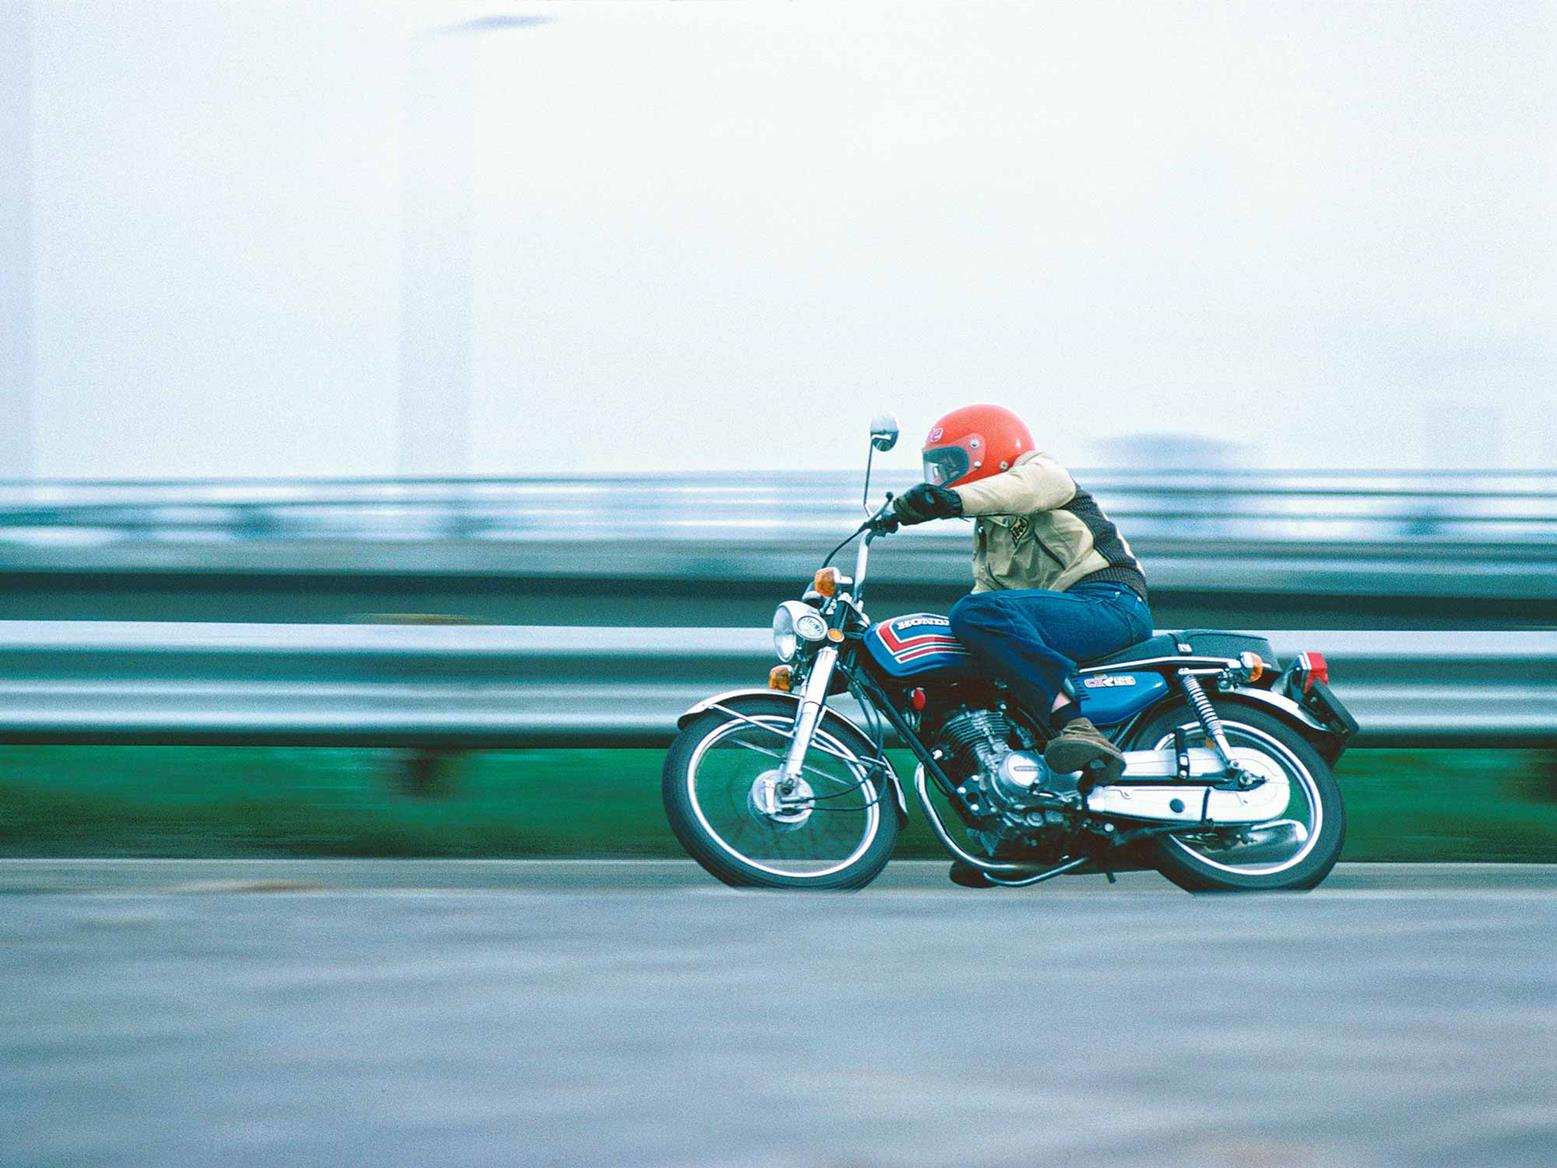 Cornering on an early Honda CG125